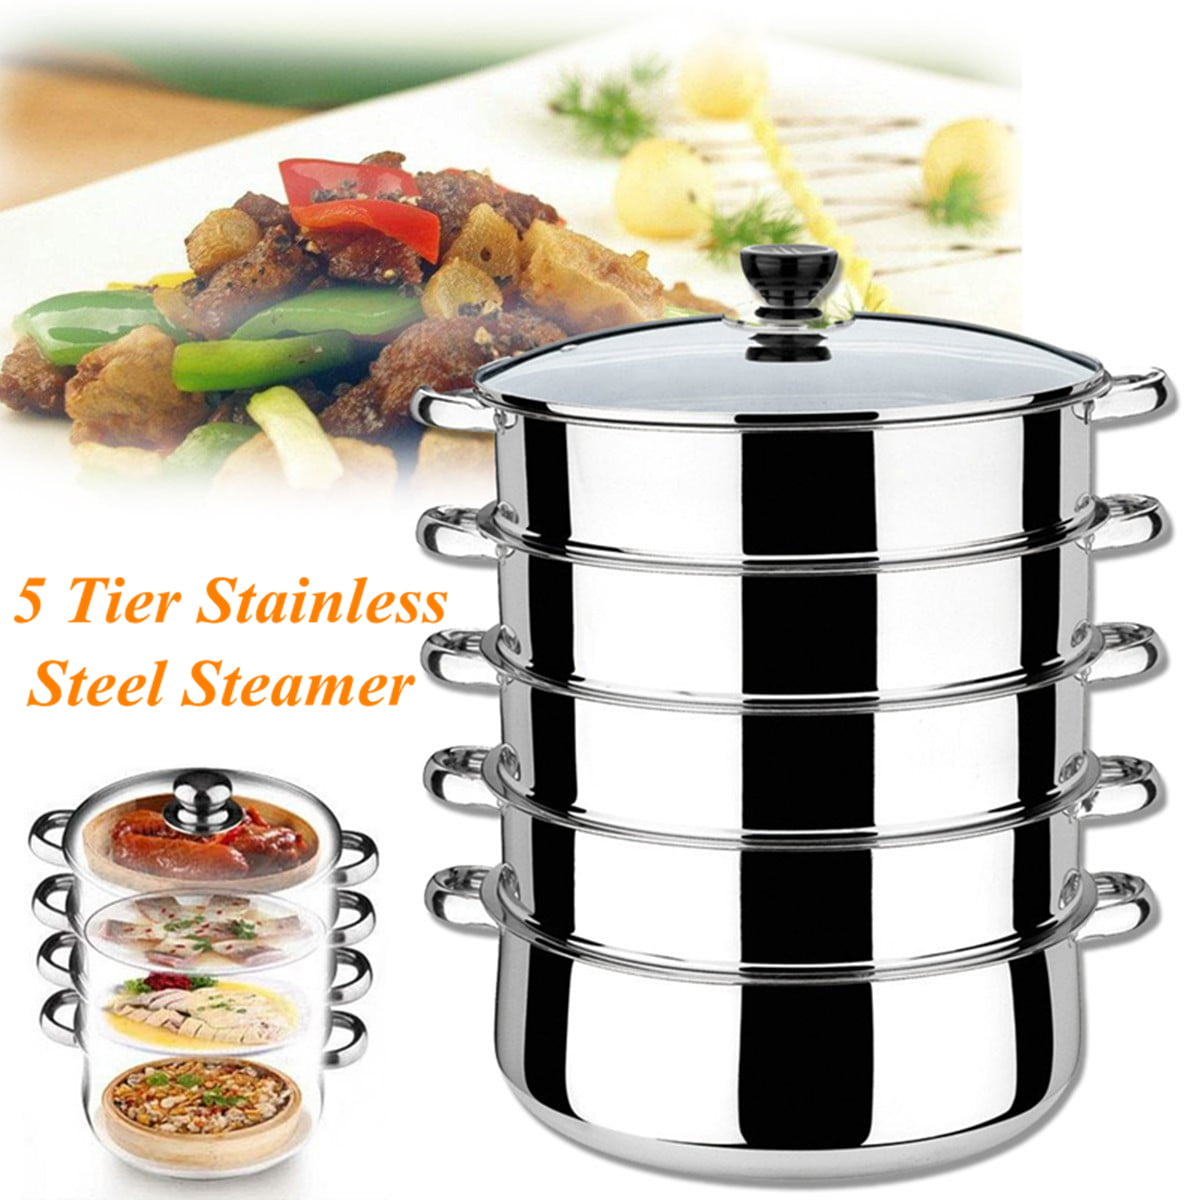 5 Tier Stainless Steel Steamer Induction Compatible Cookware 30cm Saucepan Pot by